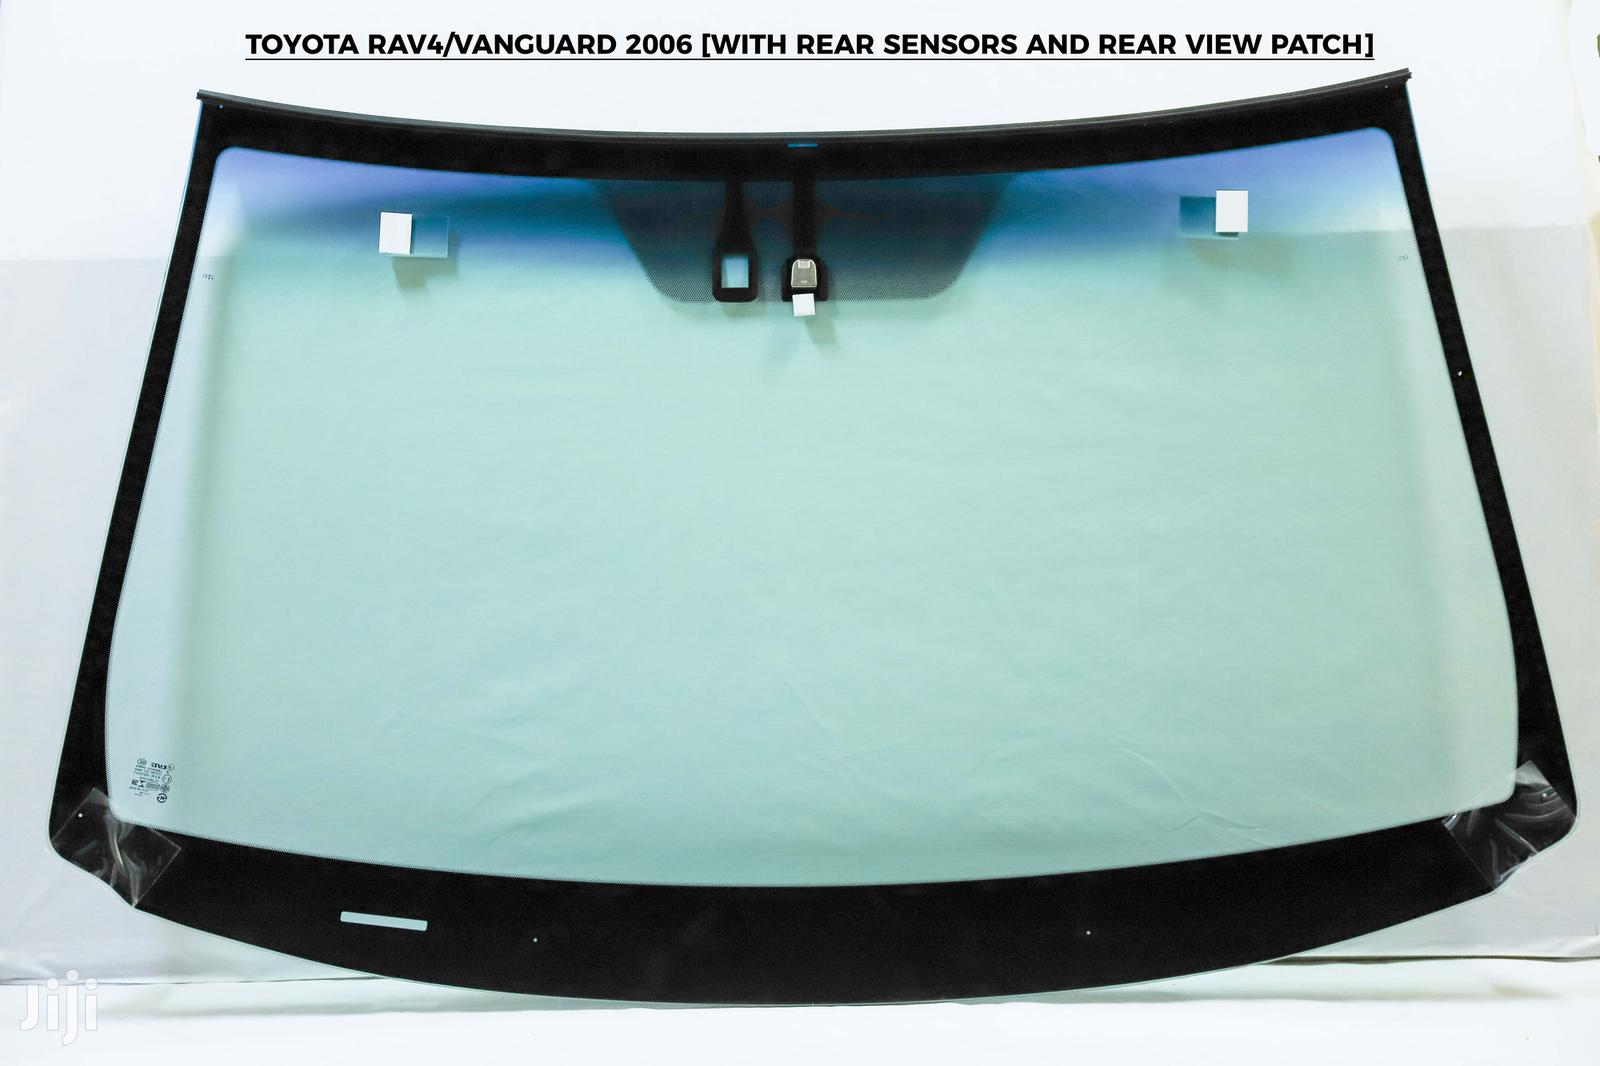 Archive: Toyota Rav4 Vanguard 2006 With Rear Sensors And Rear View Patch